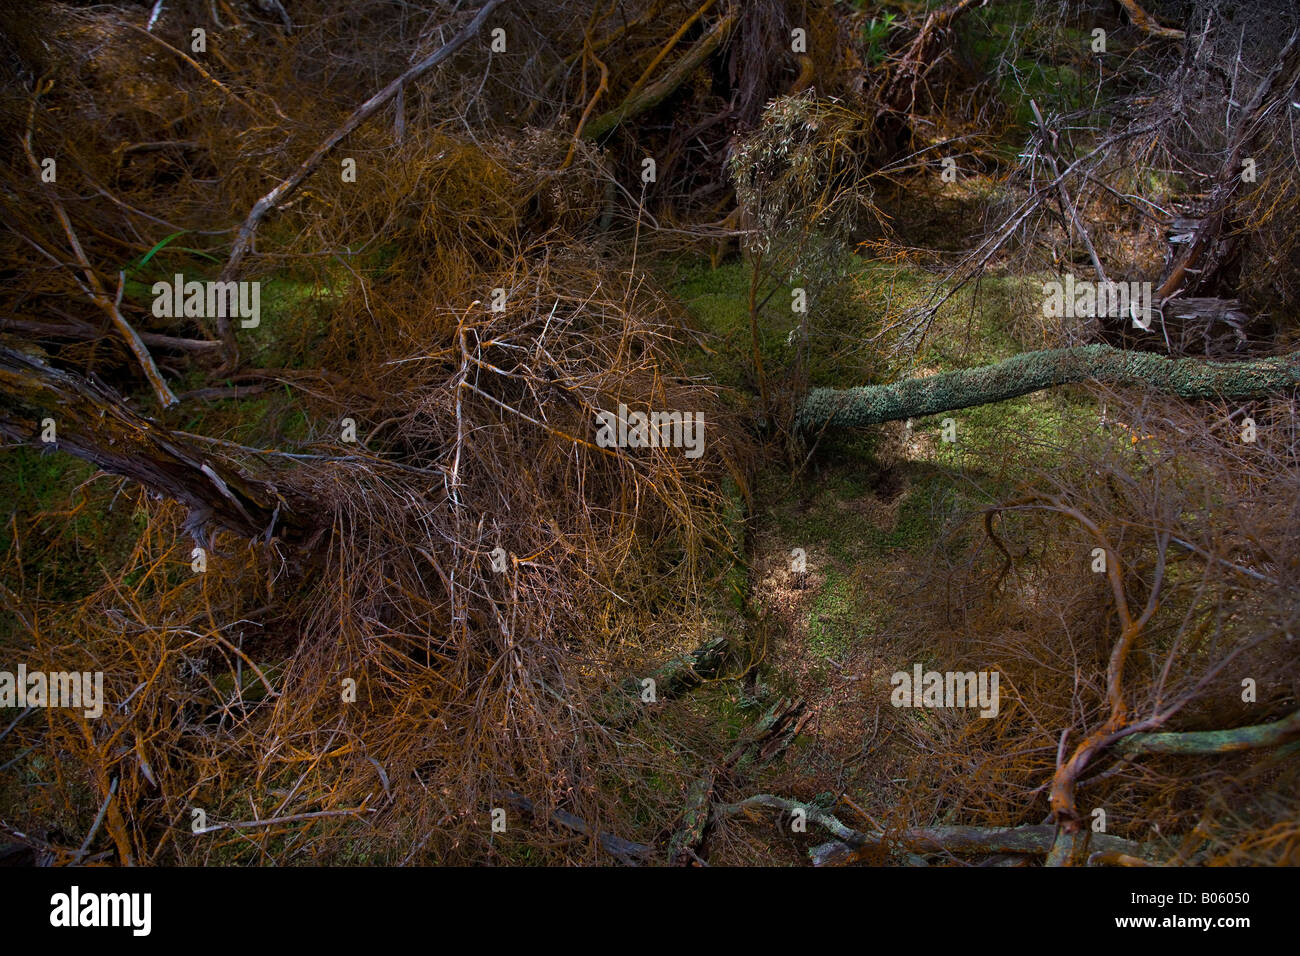 Moss and old decaying branches covered in moss and algae around thermal pools in Rotorua area, New Zealand. - Stock Image